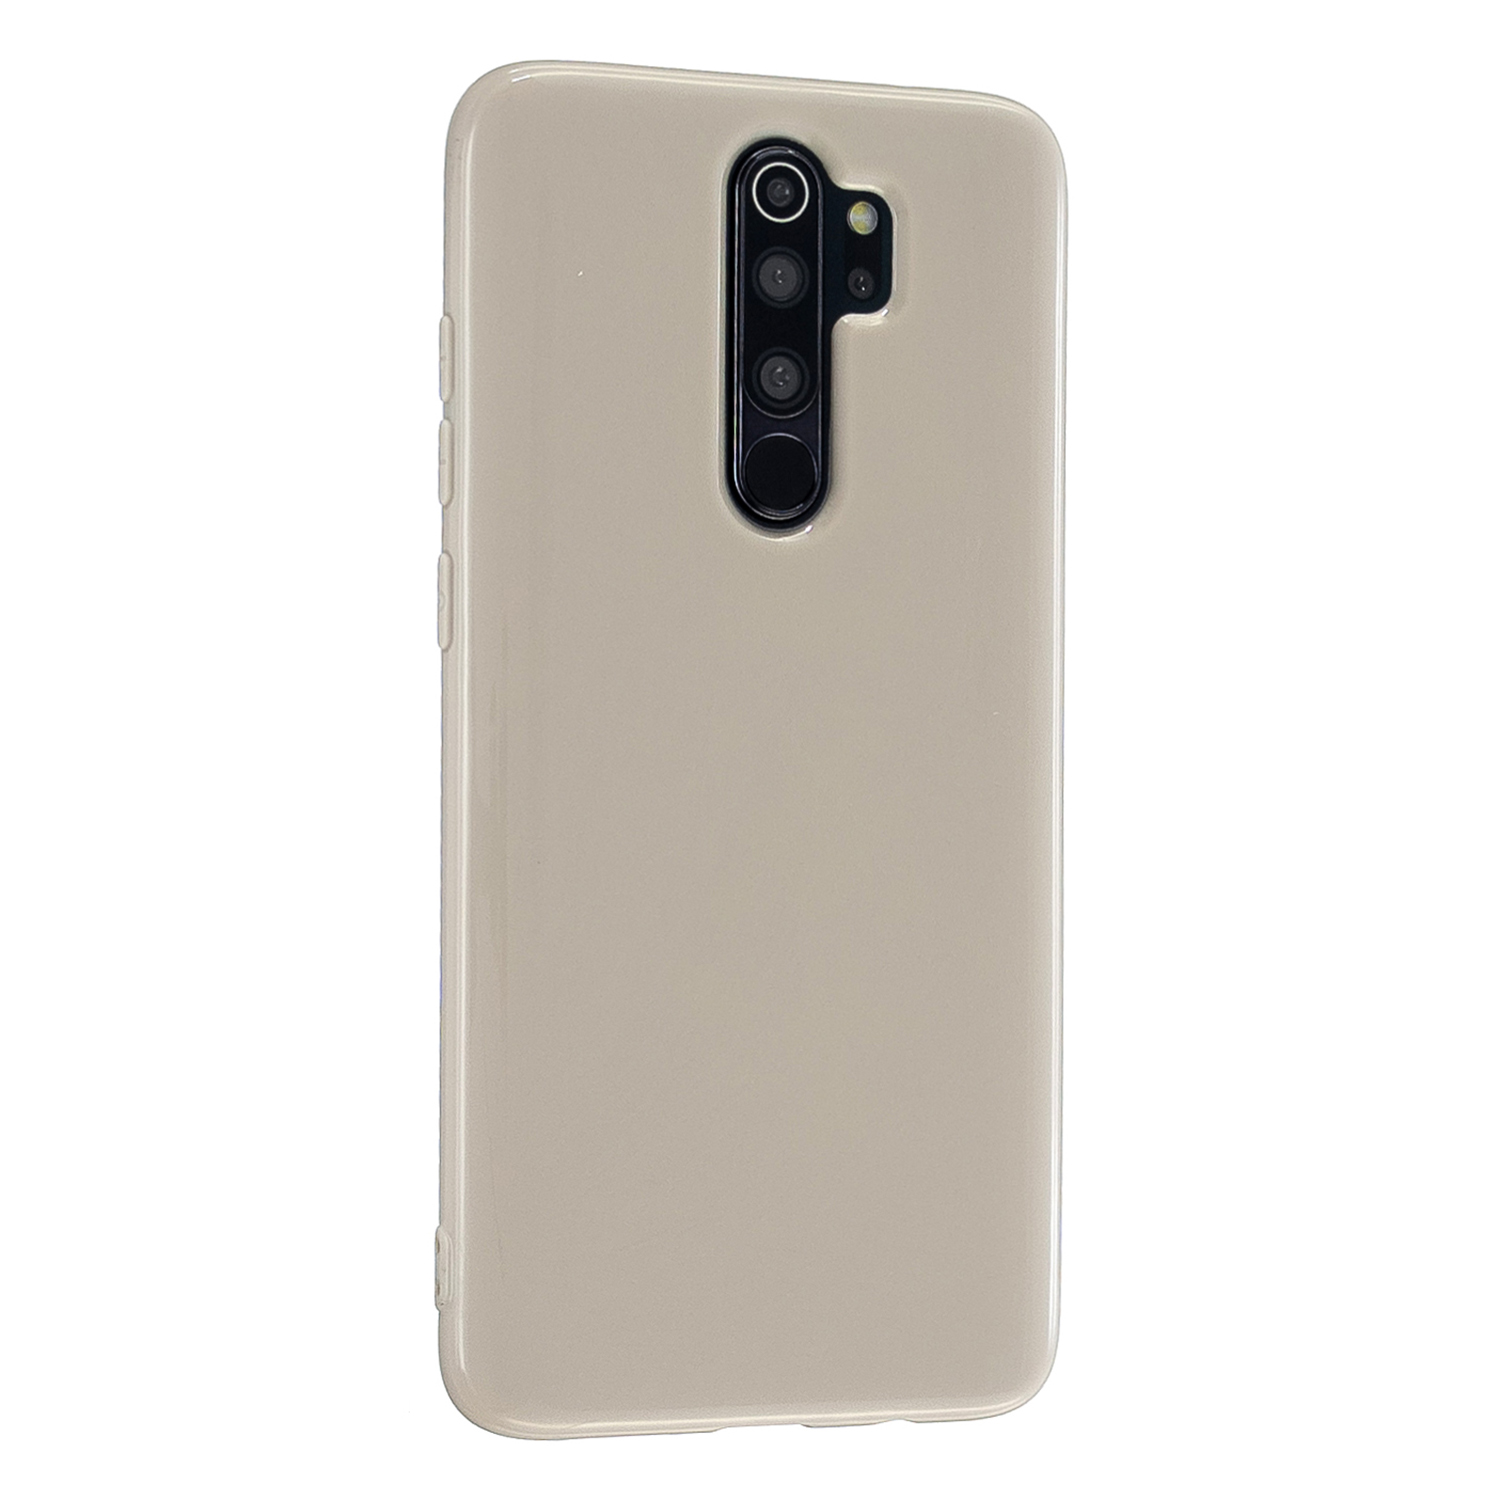 For Redmi Note 8/8 Pro Cellphone Cover 2.0mm Thickened TPU Case Camera Protector Anti-Scratch Soft Phone Shell Khaki